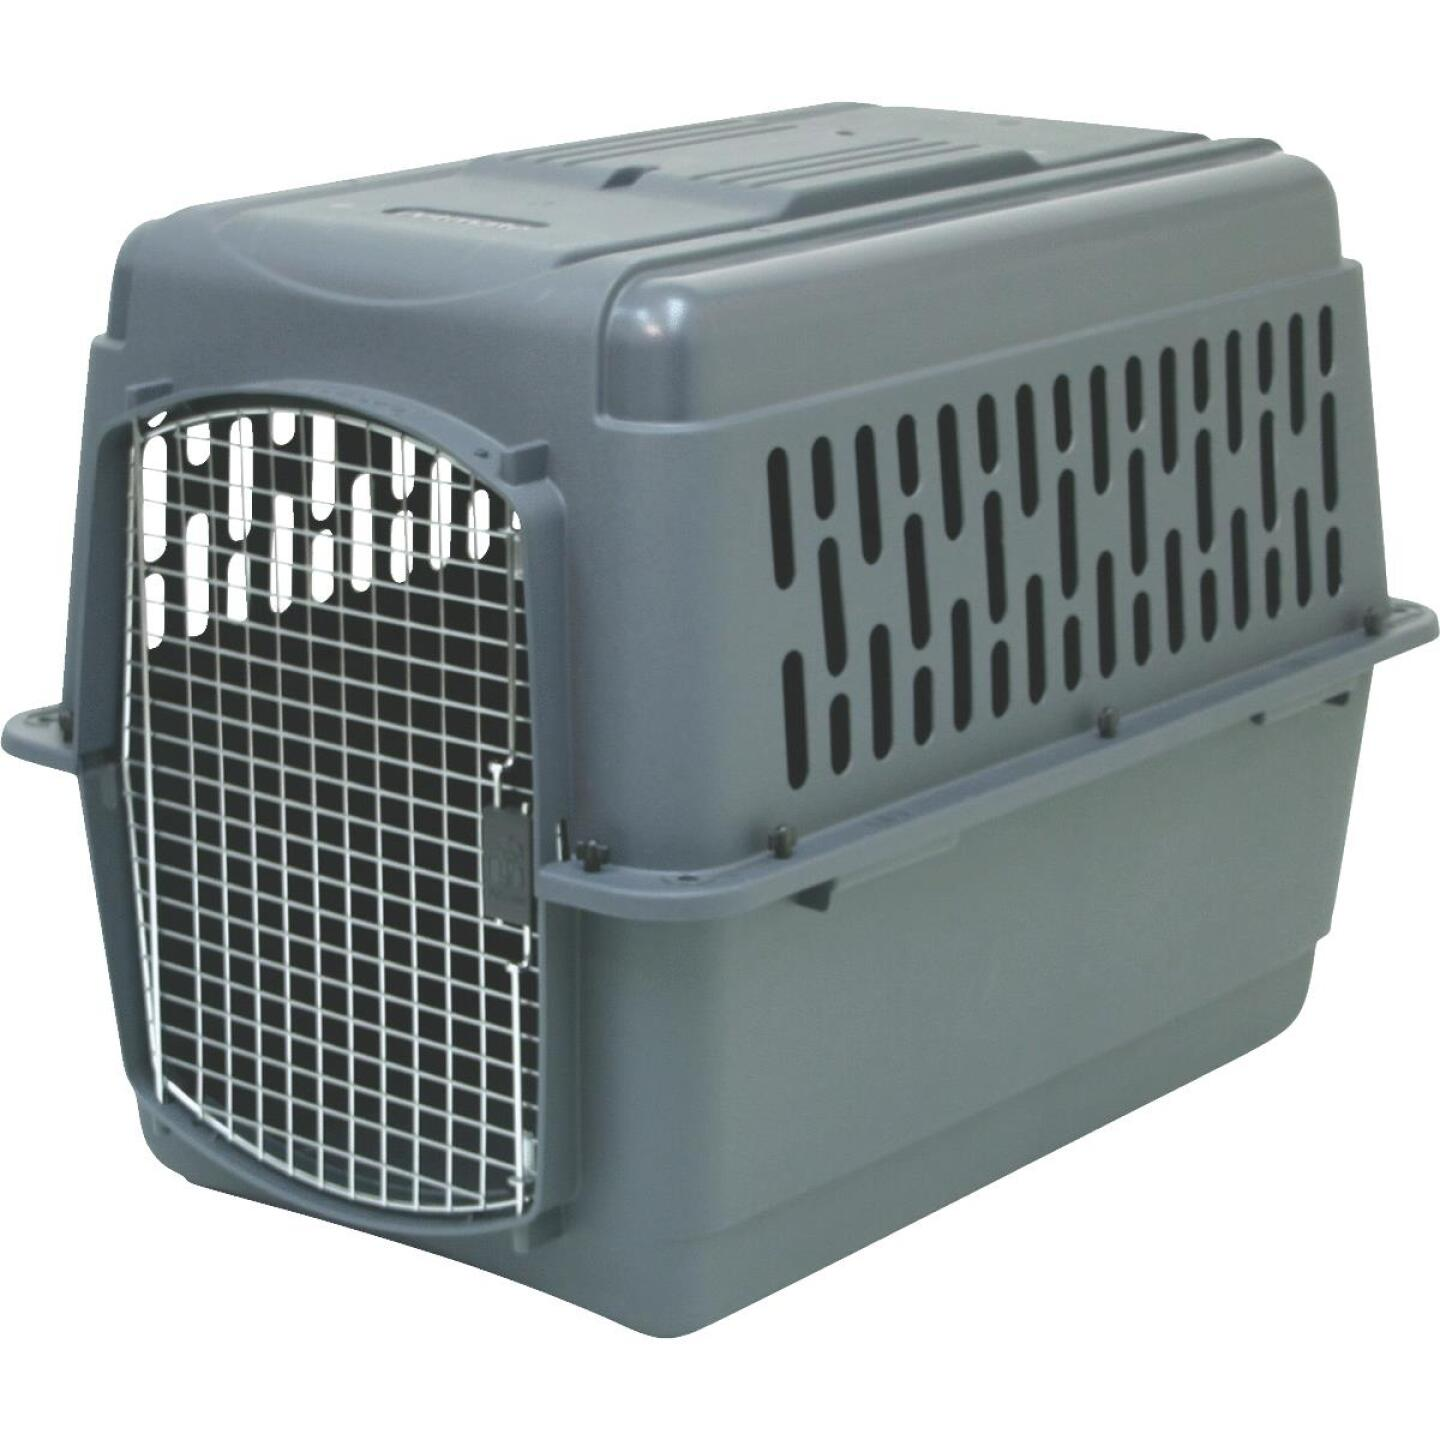 Petmate Aspen Pet 36 In. x 25 In. x 27 In. 50 to 70 Lb. Large Porter Pet Carrier Image 1